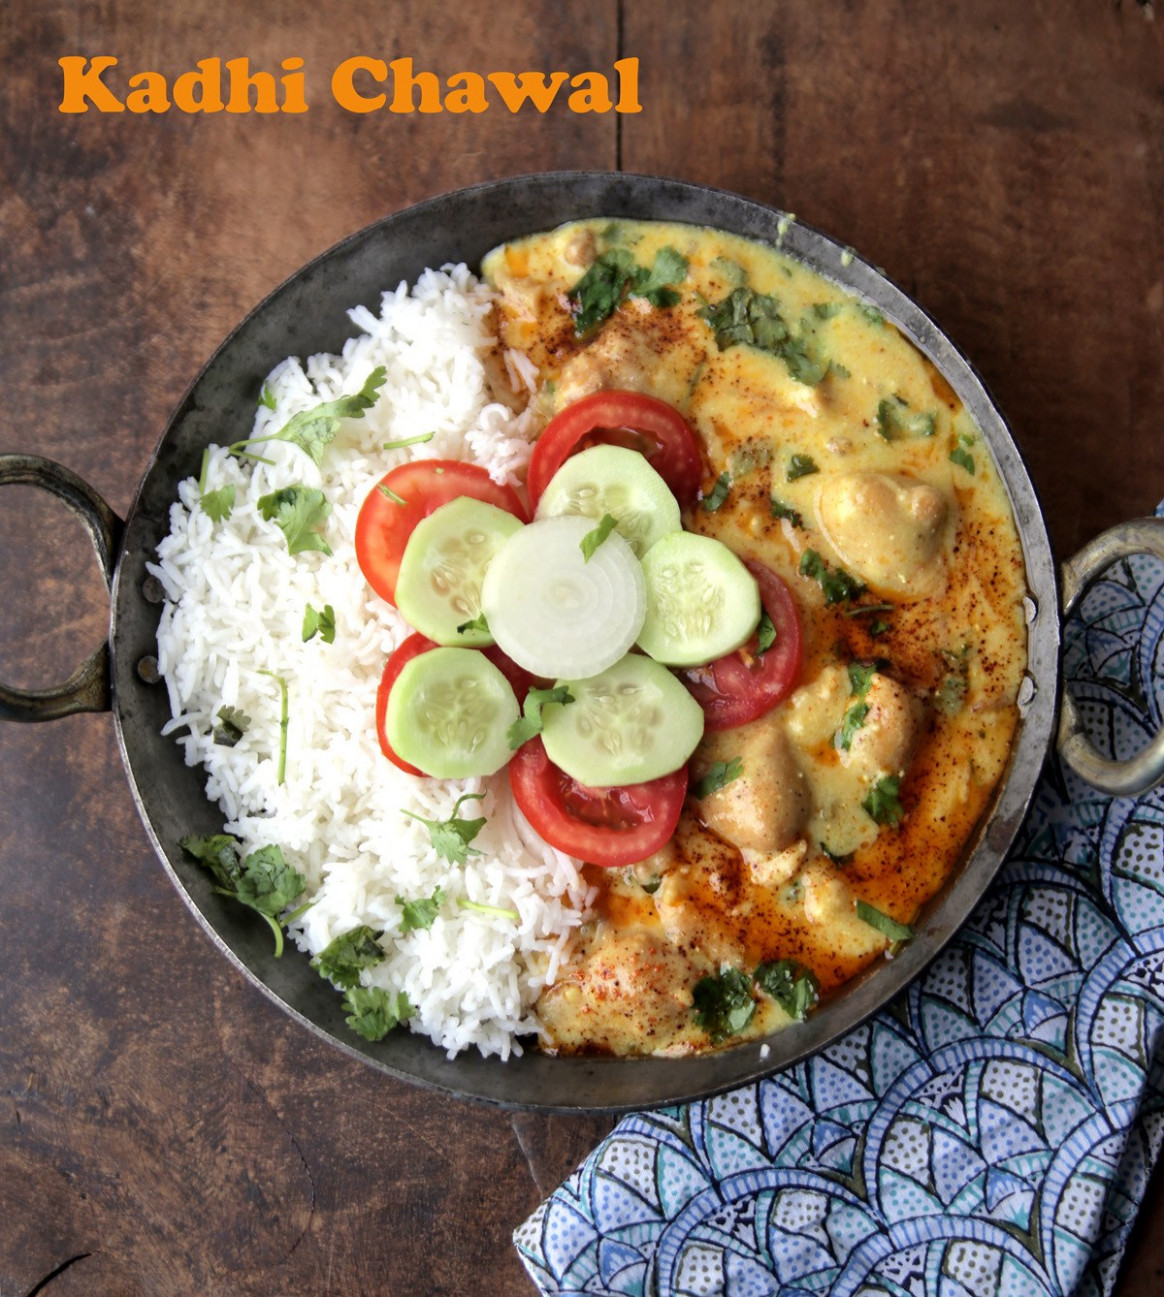 14 Vegetarian Indian Lunch Ideas - whats cooking mom - healthy recipes vegetarian indian